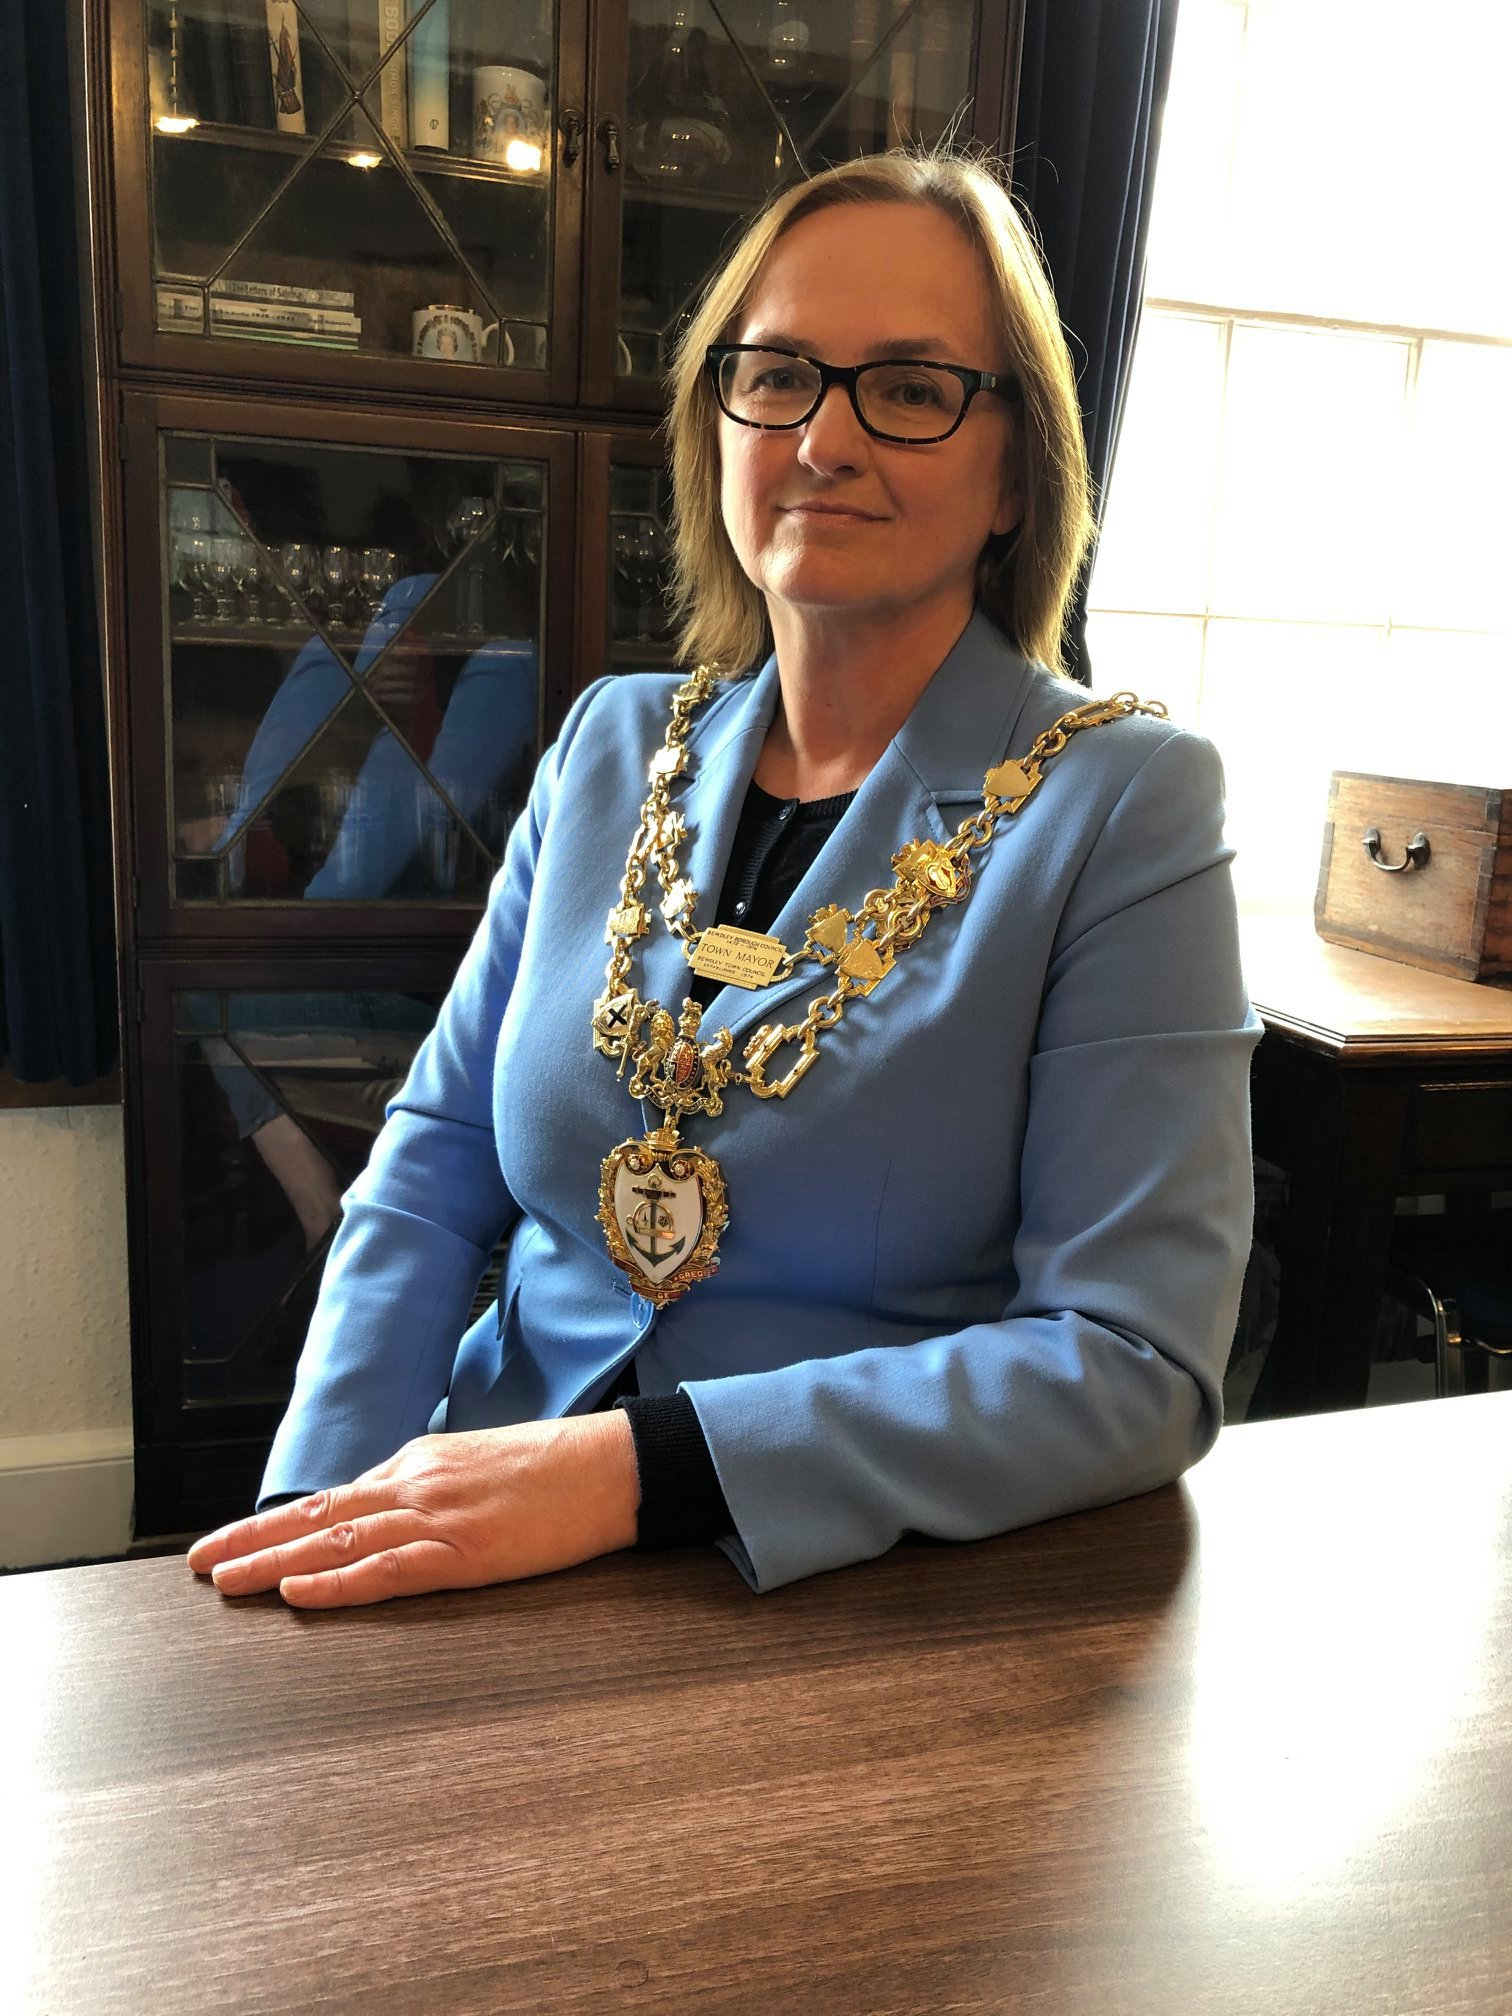 Councillor Anna Coleman, Mayor of Bewdley